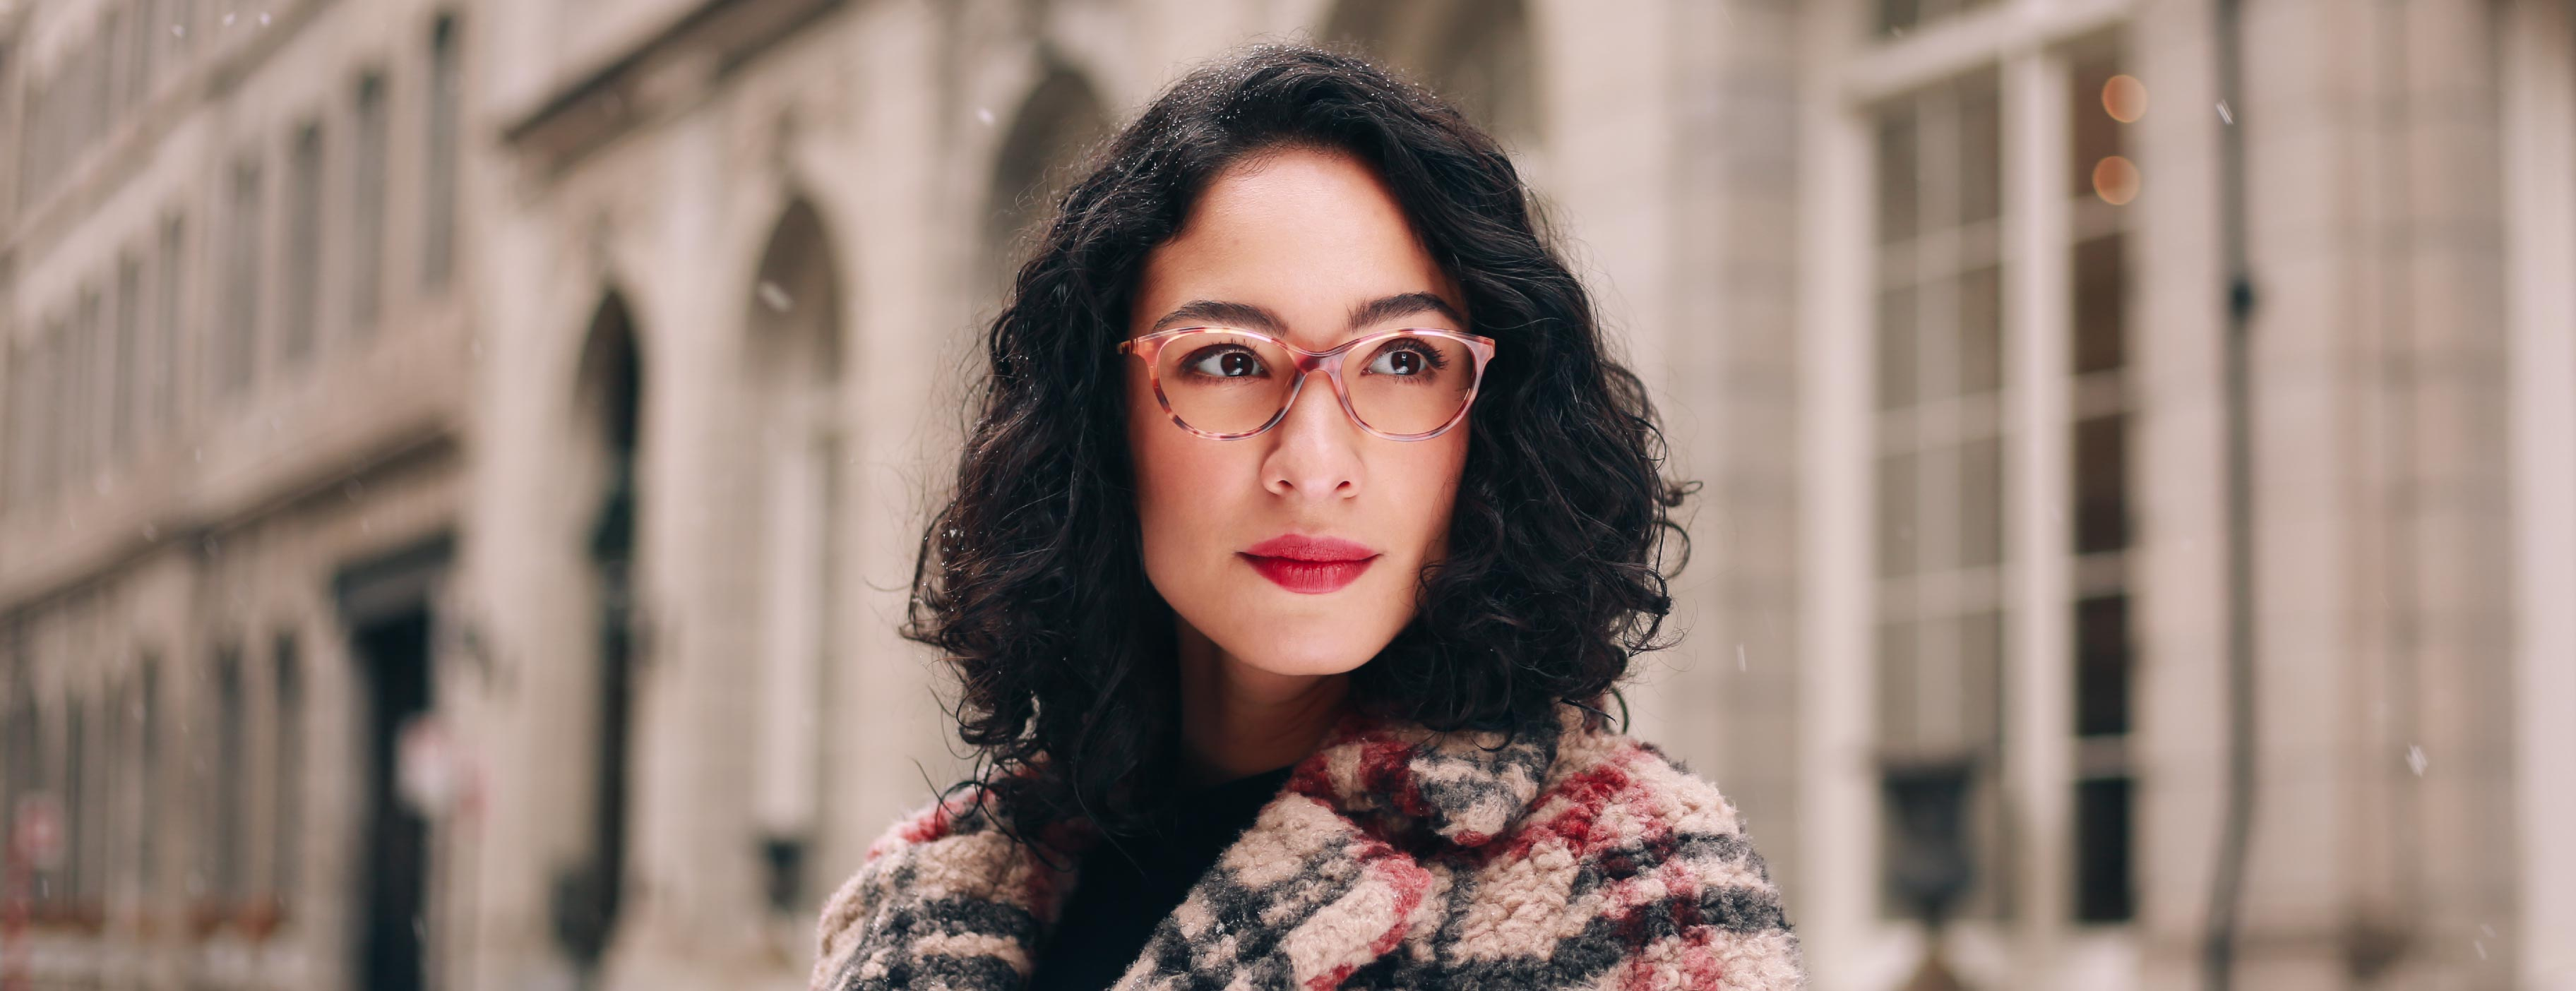 Woman wearing prodesign 3611 glasses